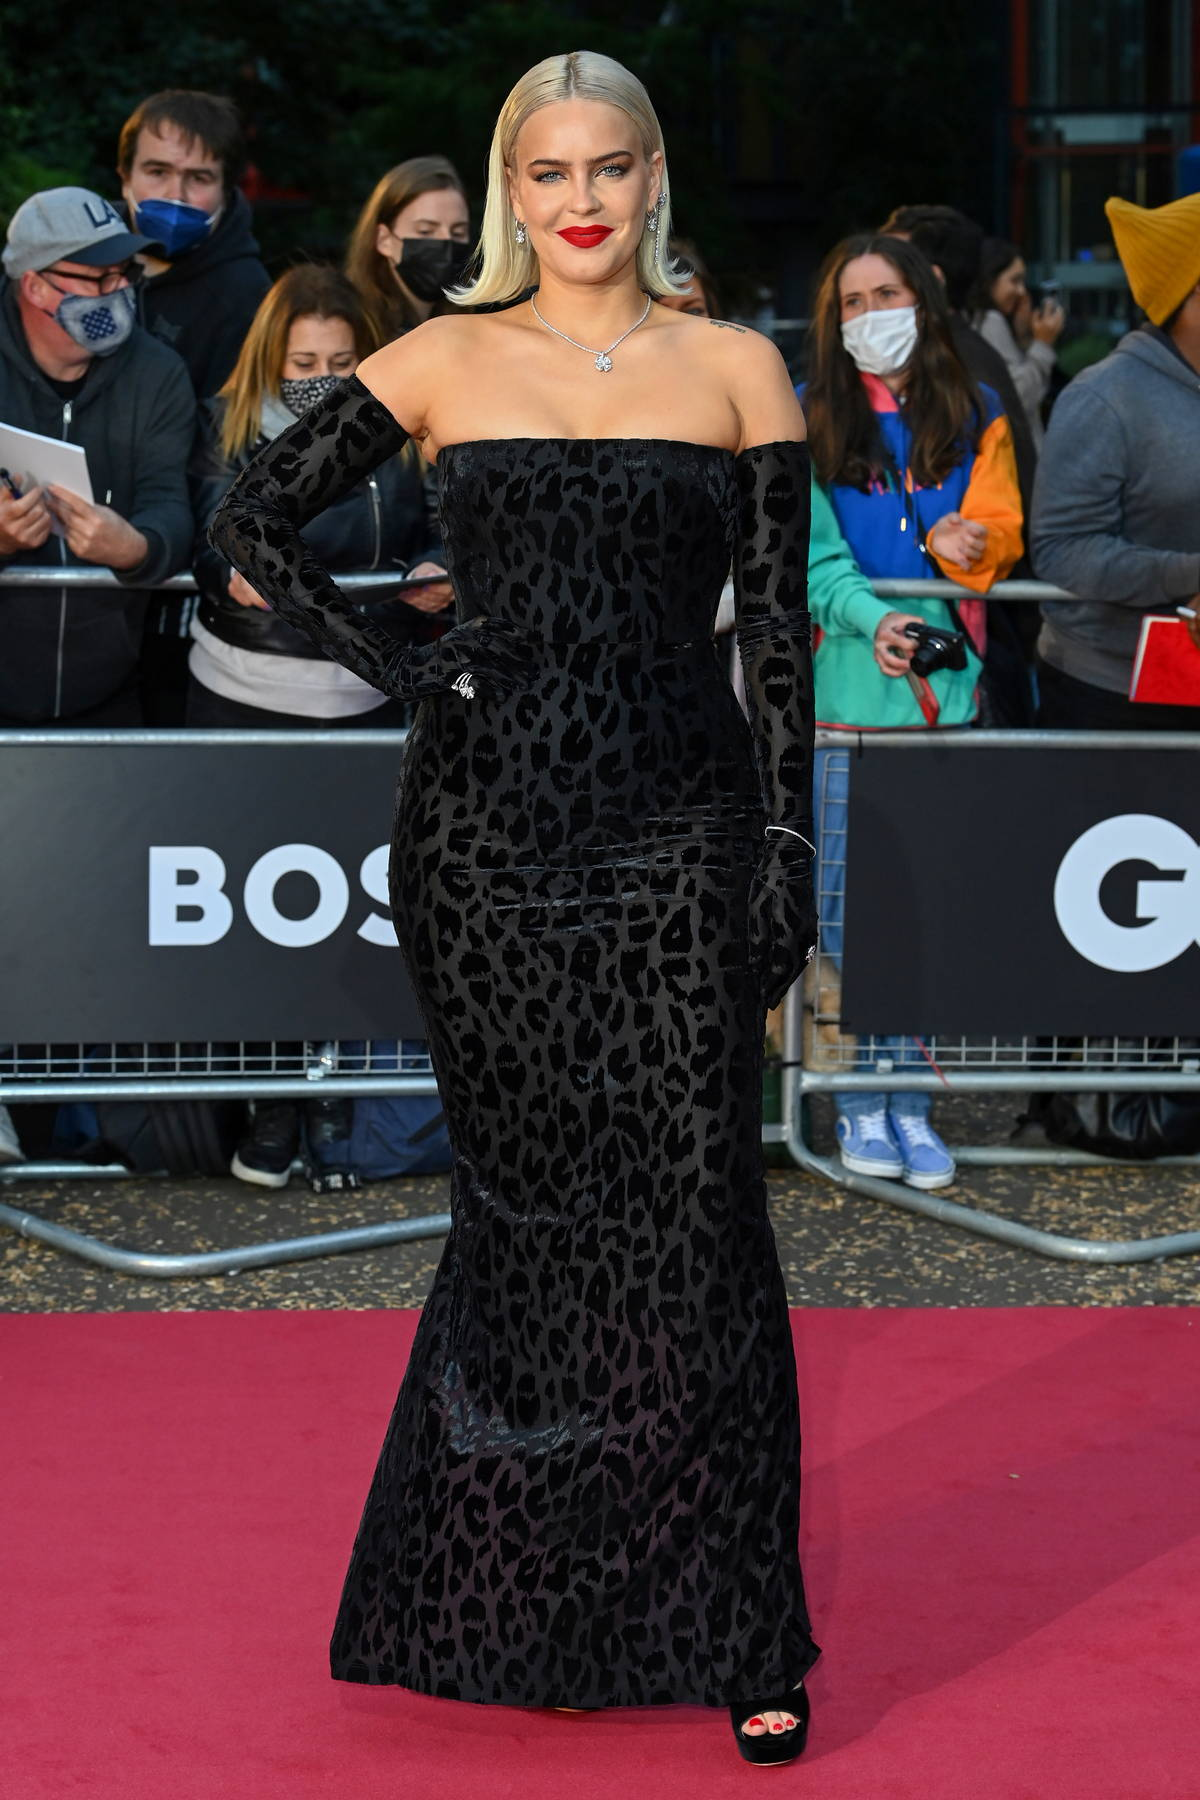 Anne-Marie attends the GQ Men Of The Year Awards 2021 at the Tate Modern in London, UK